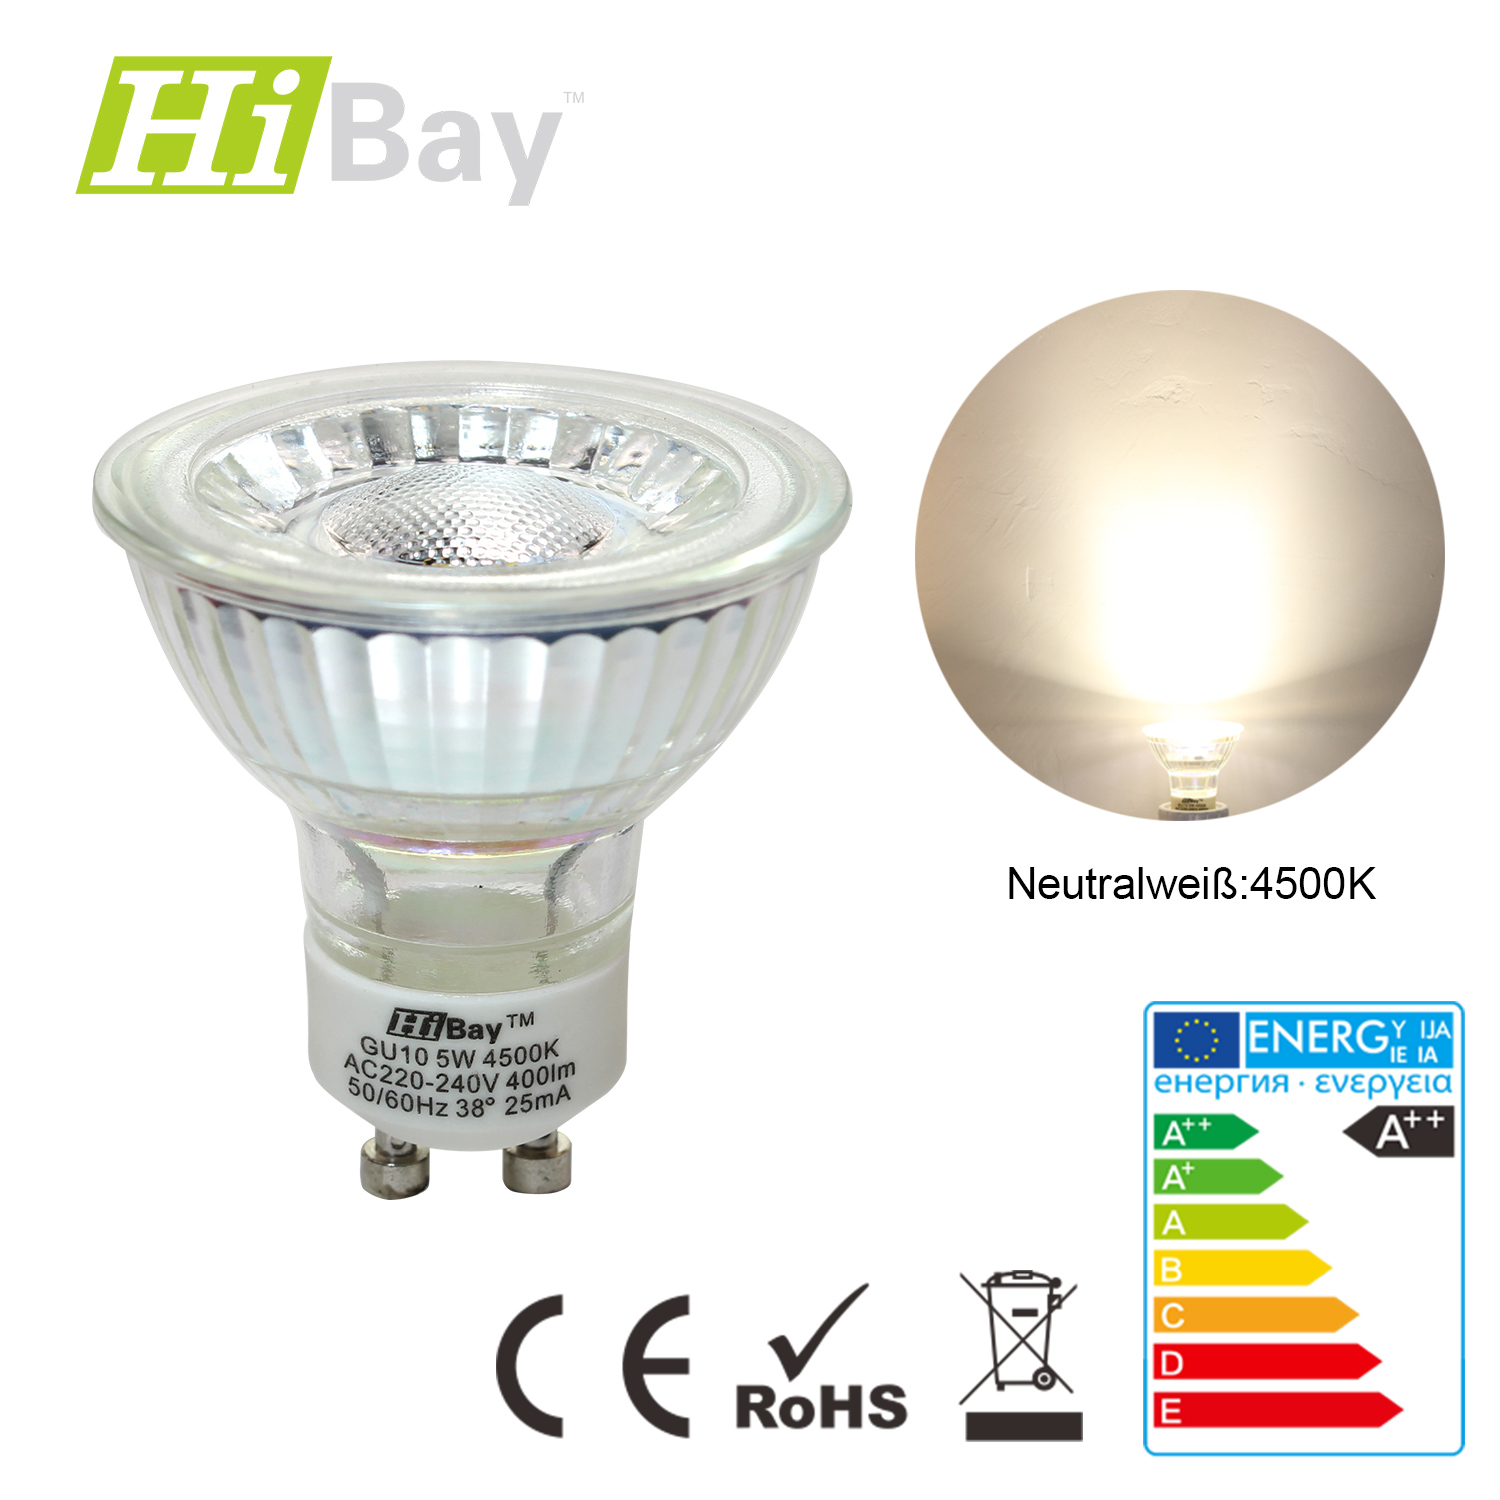 5w gu10 led cob leuchtmittel halogenlampe reflektor strahler nein dimmbar ebay. Black Bedroom Furniture Sets. Home Design Ideas